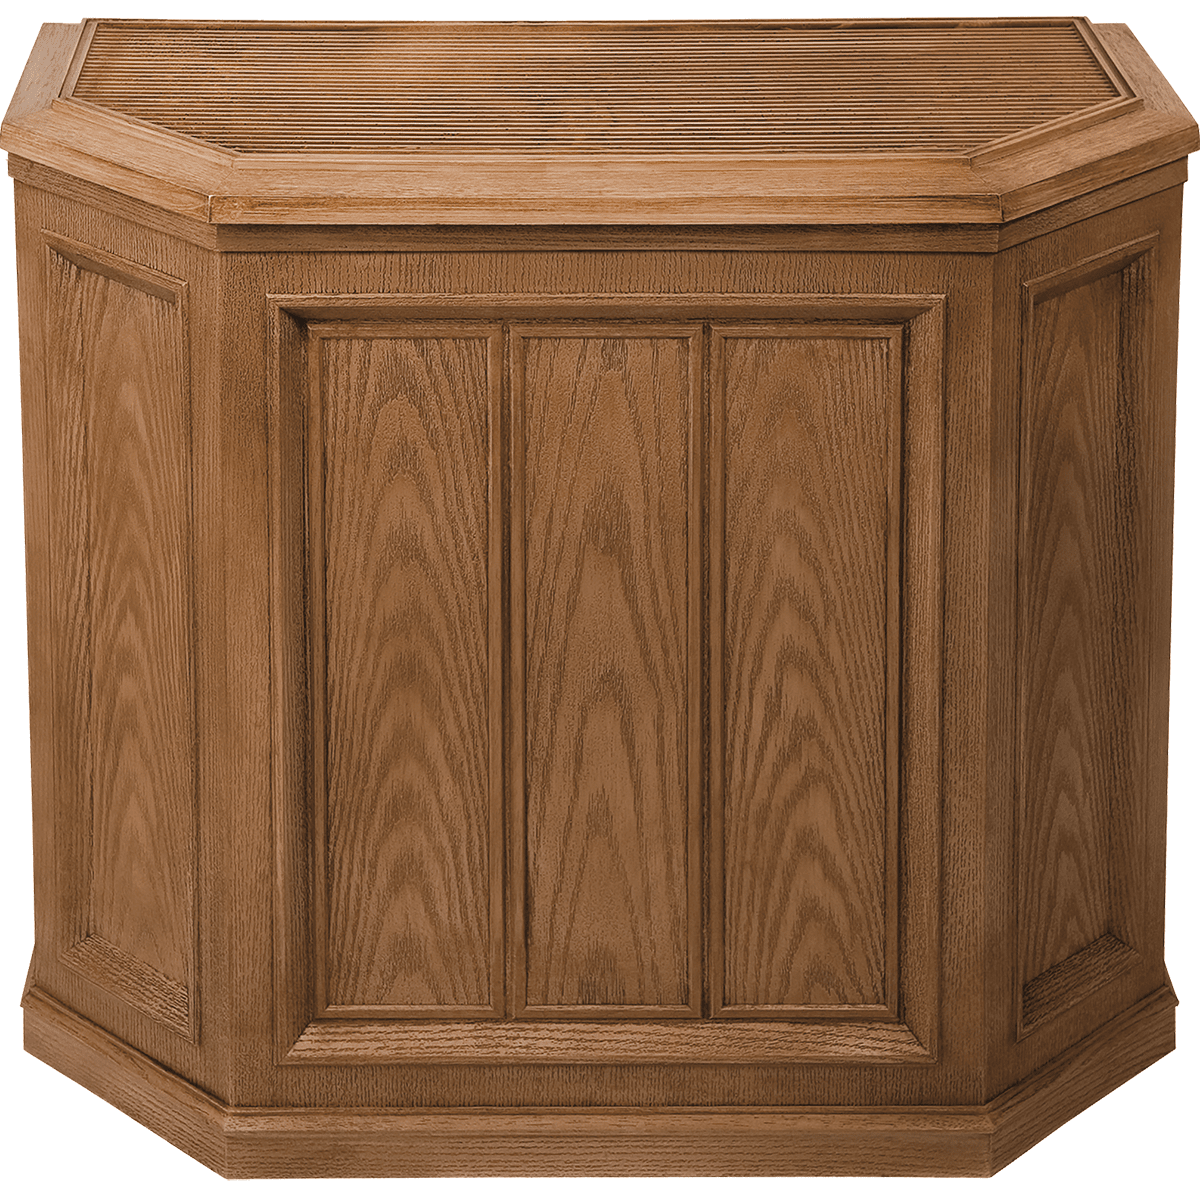 Image of Aircare Credenza Style Humidifier